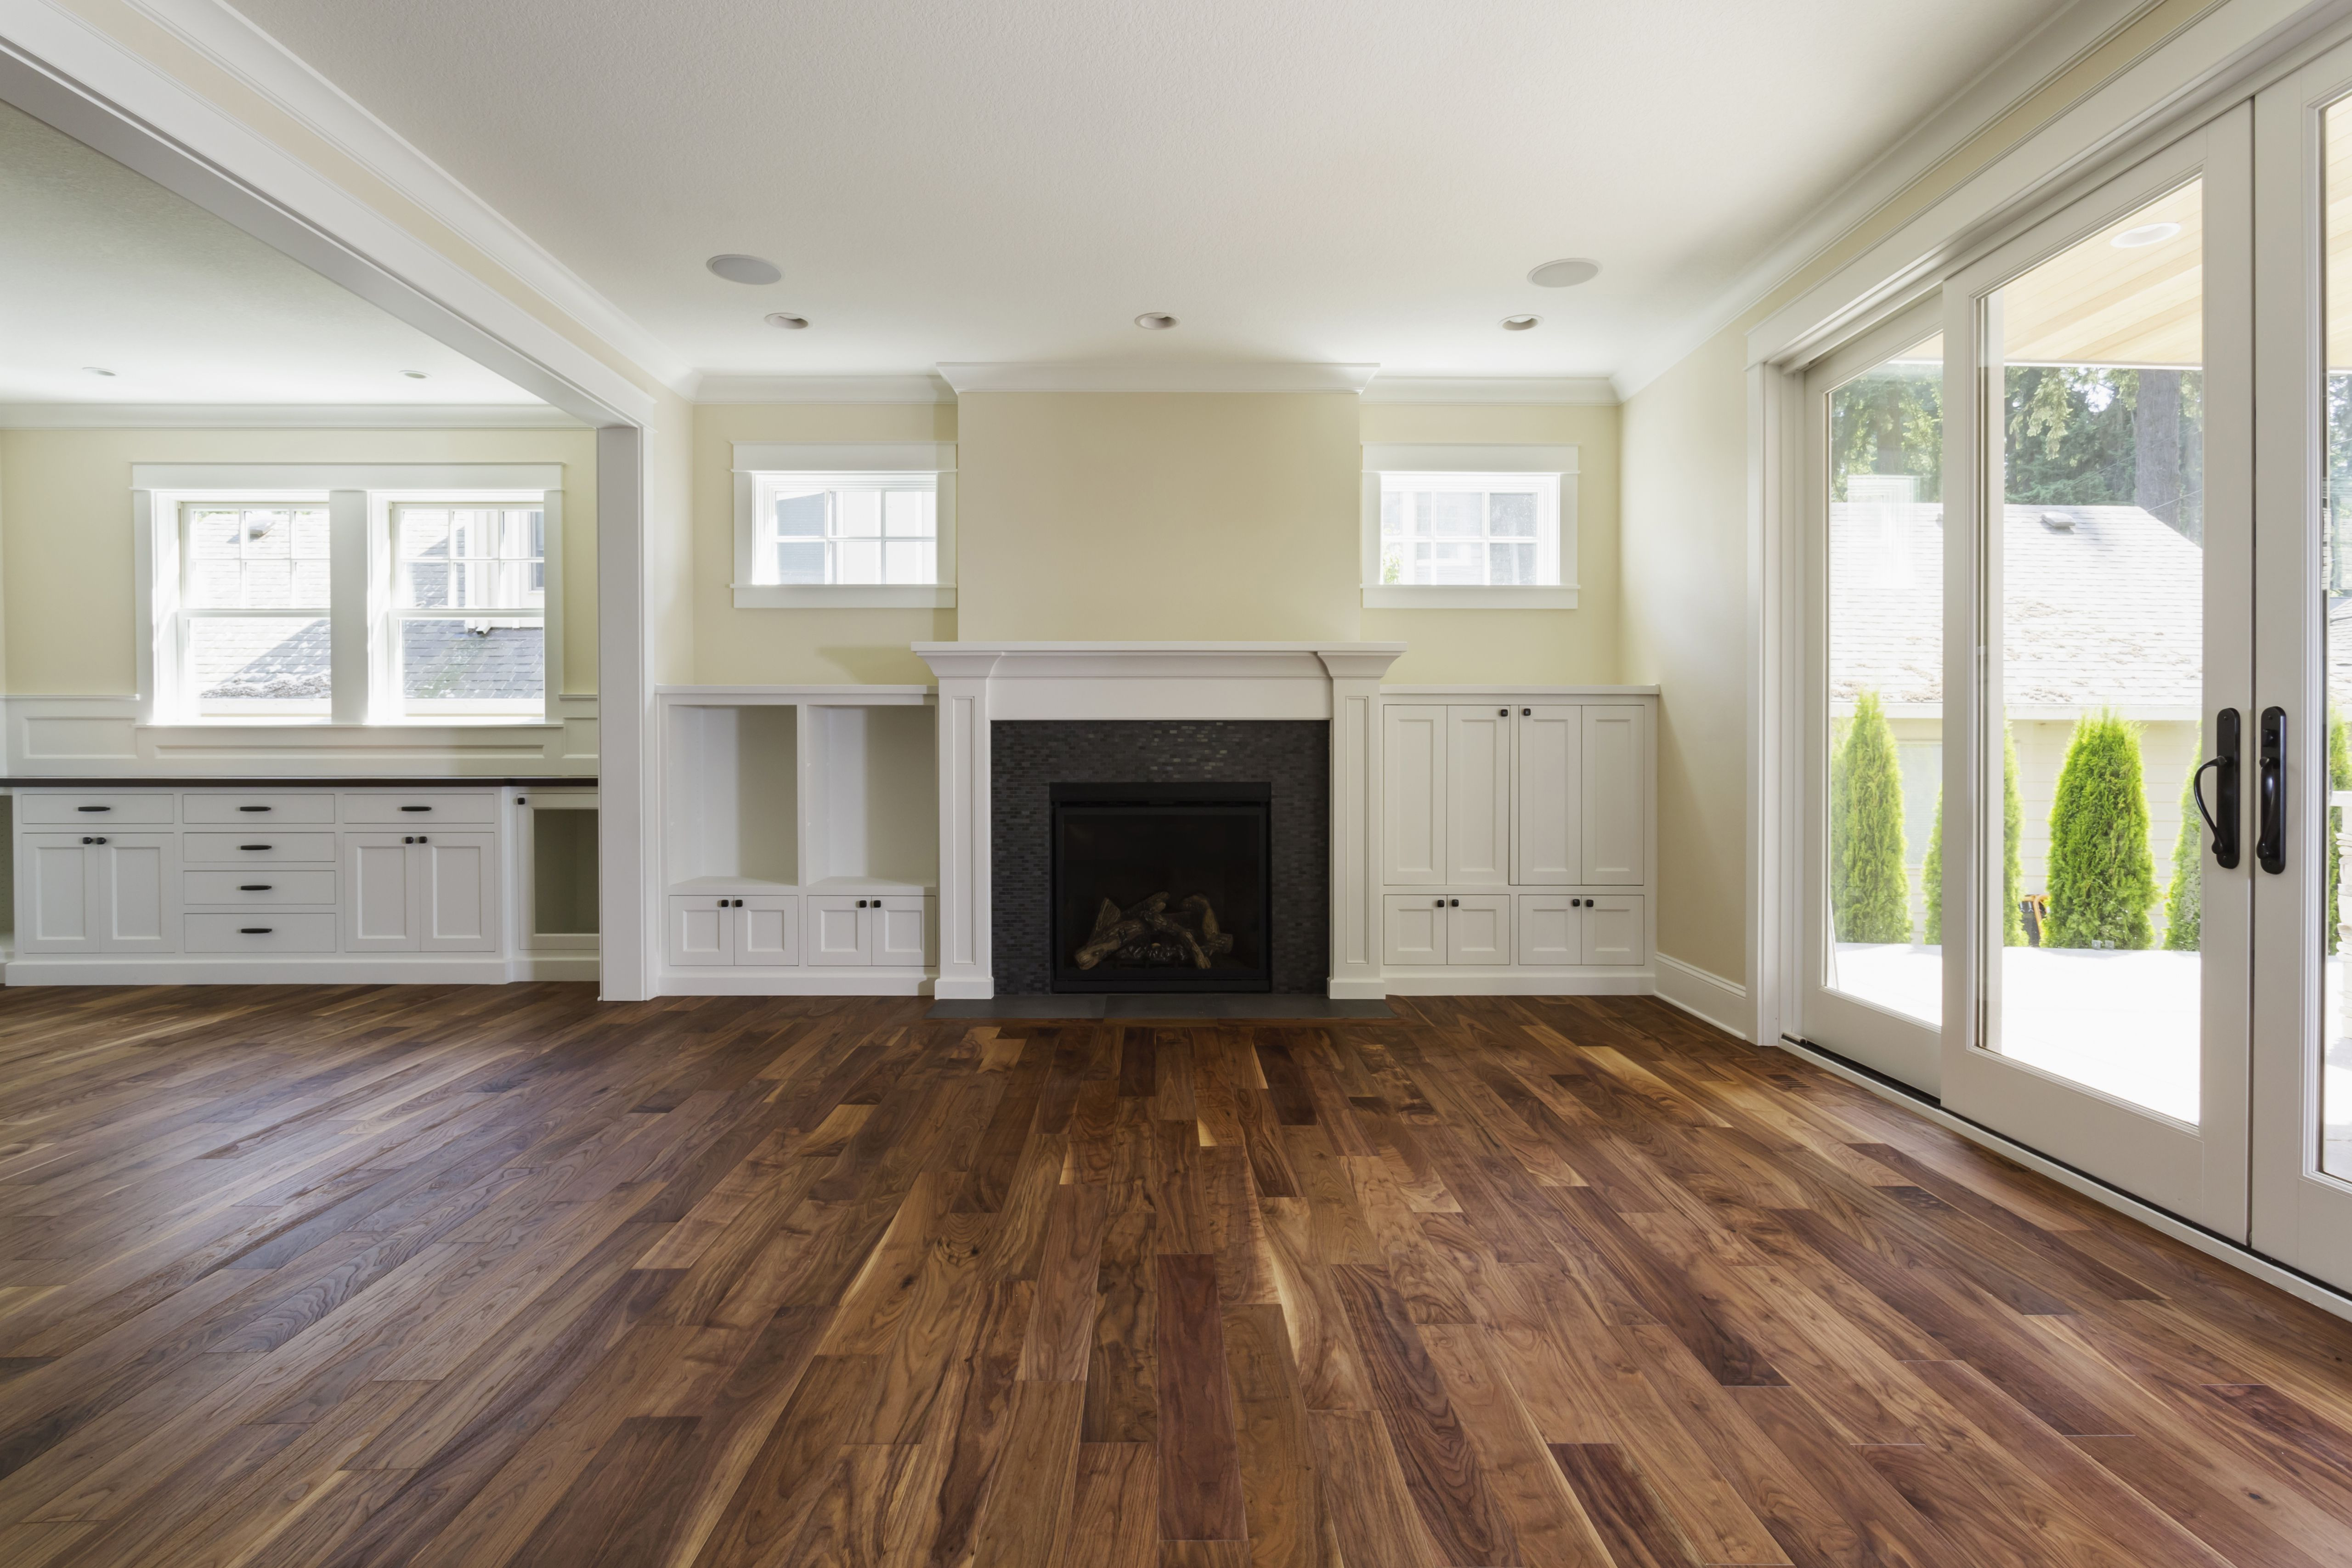 installing unfinished hardwood floors of the pros and cons of prefinished hardwood flooring pertaining to fireplace and built in shelves in living room 482143011 57bef8e33df78cc16e035397